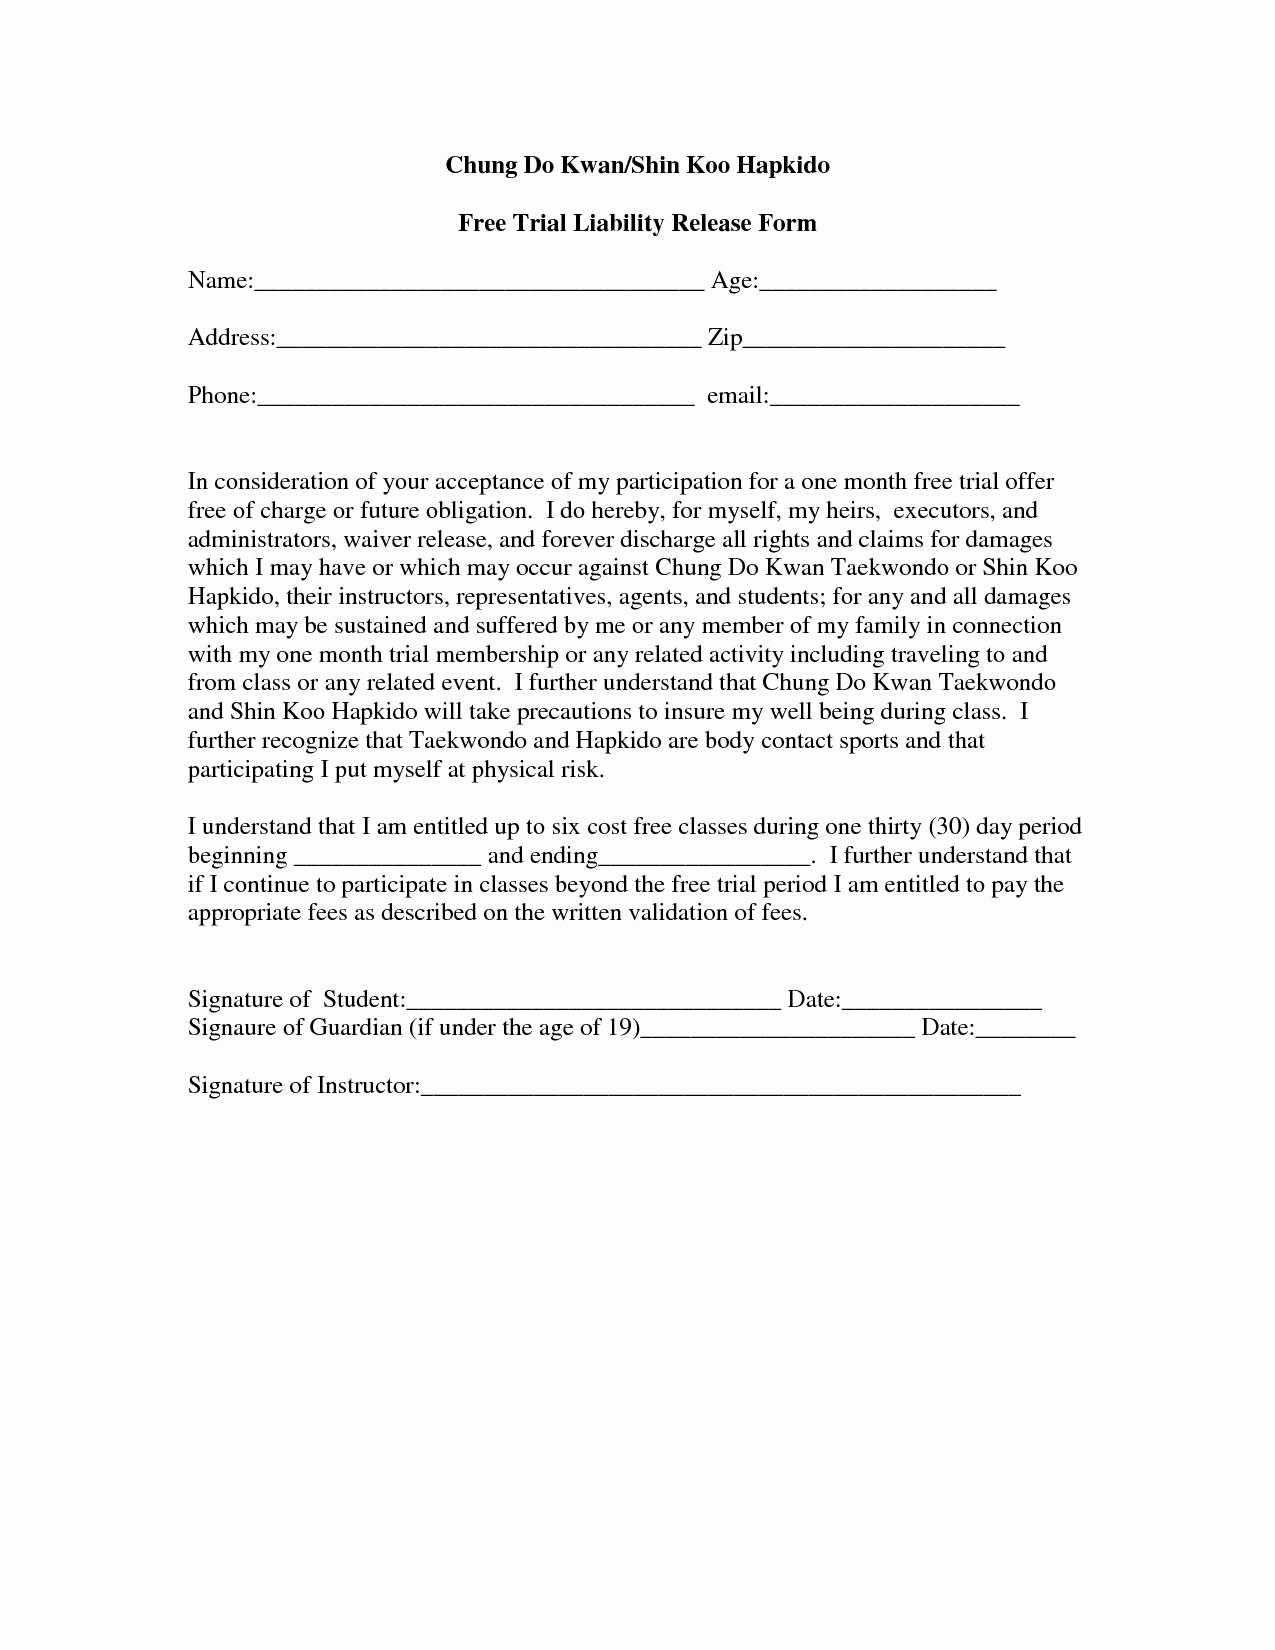 Image Release form Template Awesome Free Liability Release form Template